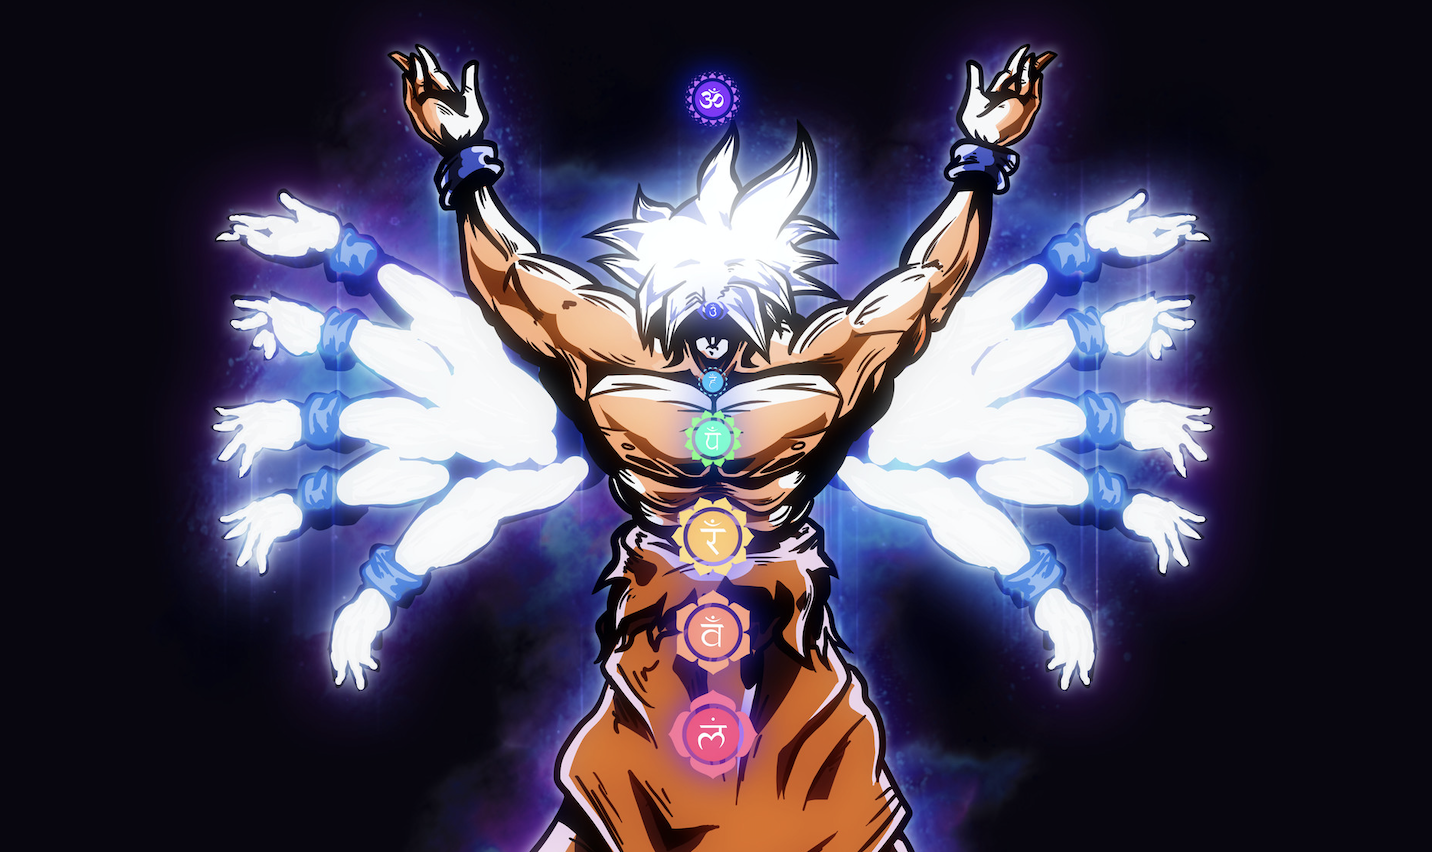 Semen Retention: Channel your Sexual Energy Throughout your Body - goku chakras